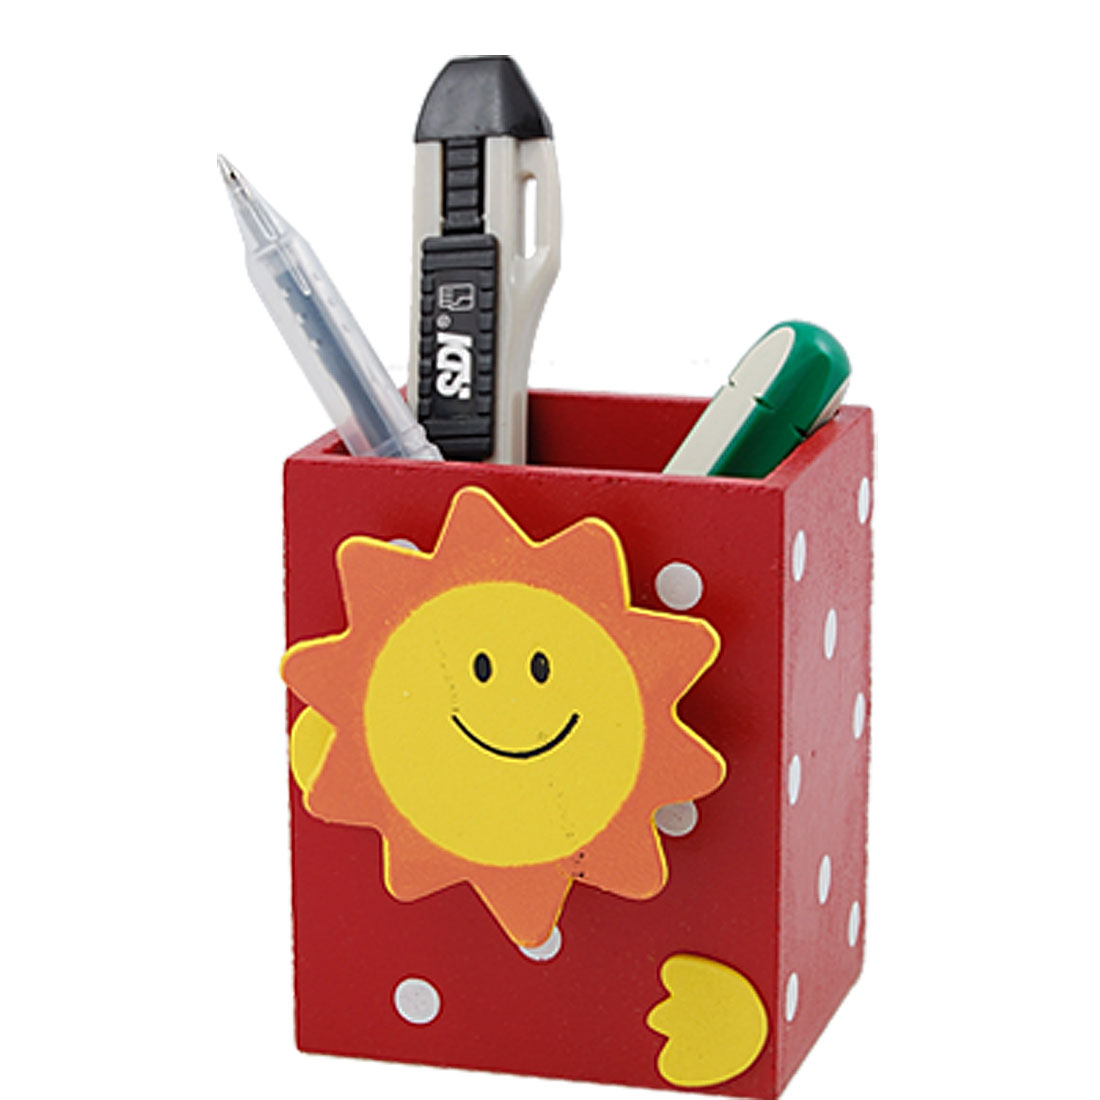 Cartoon Red Wooden Pencil Pen Vase Holder with Memo Clip